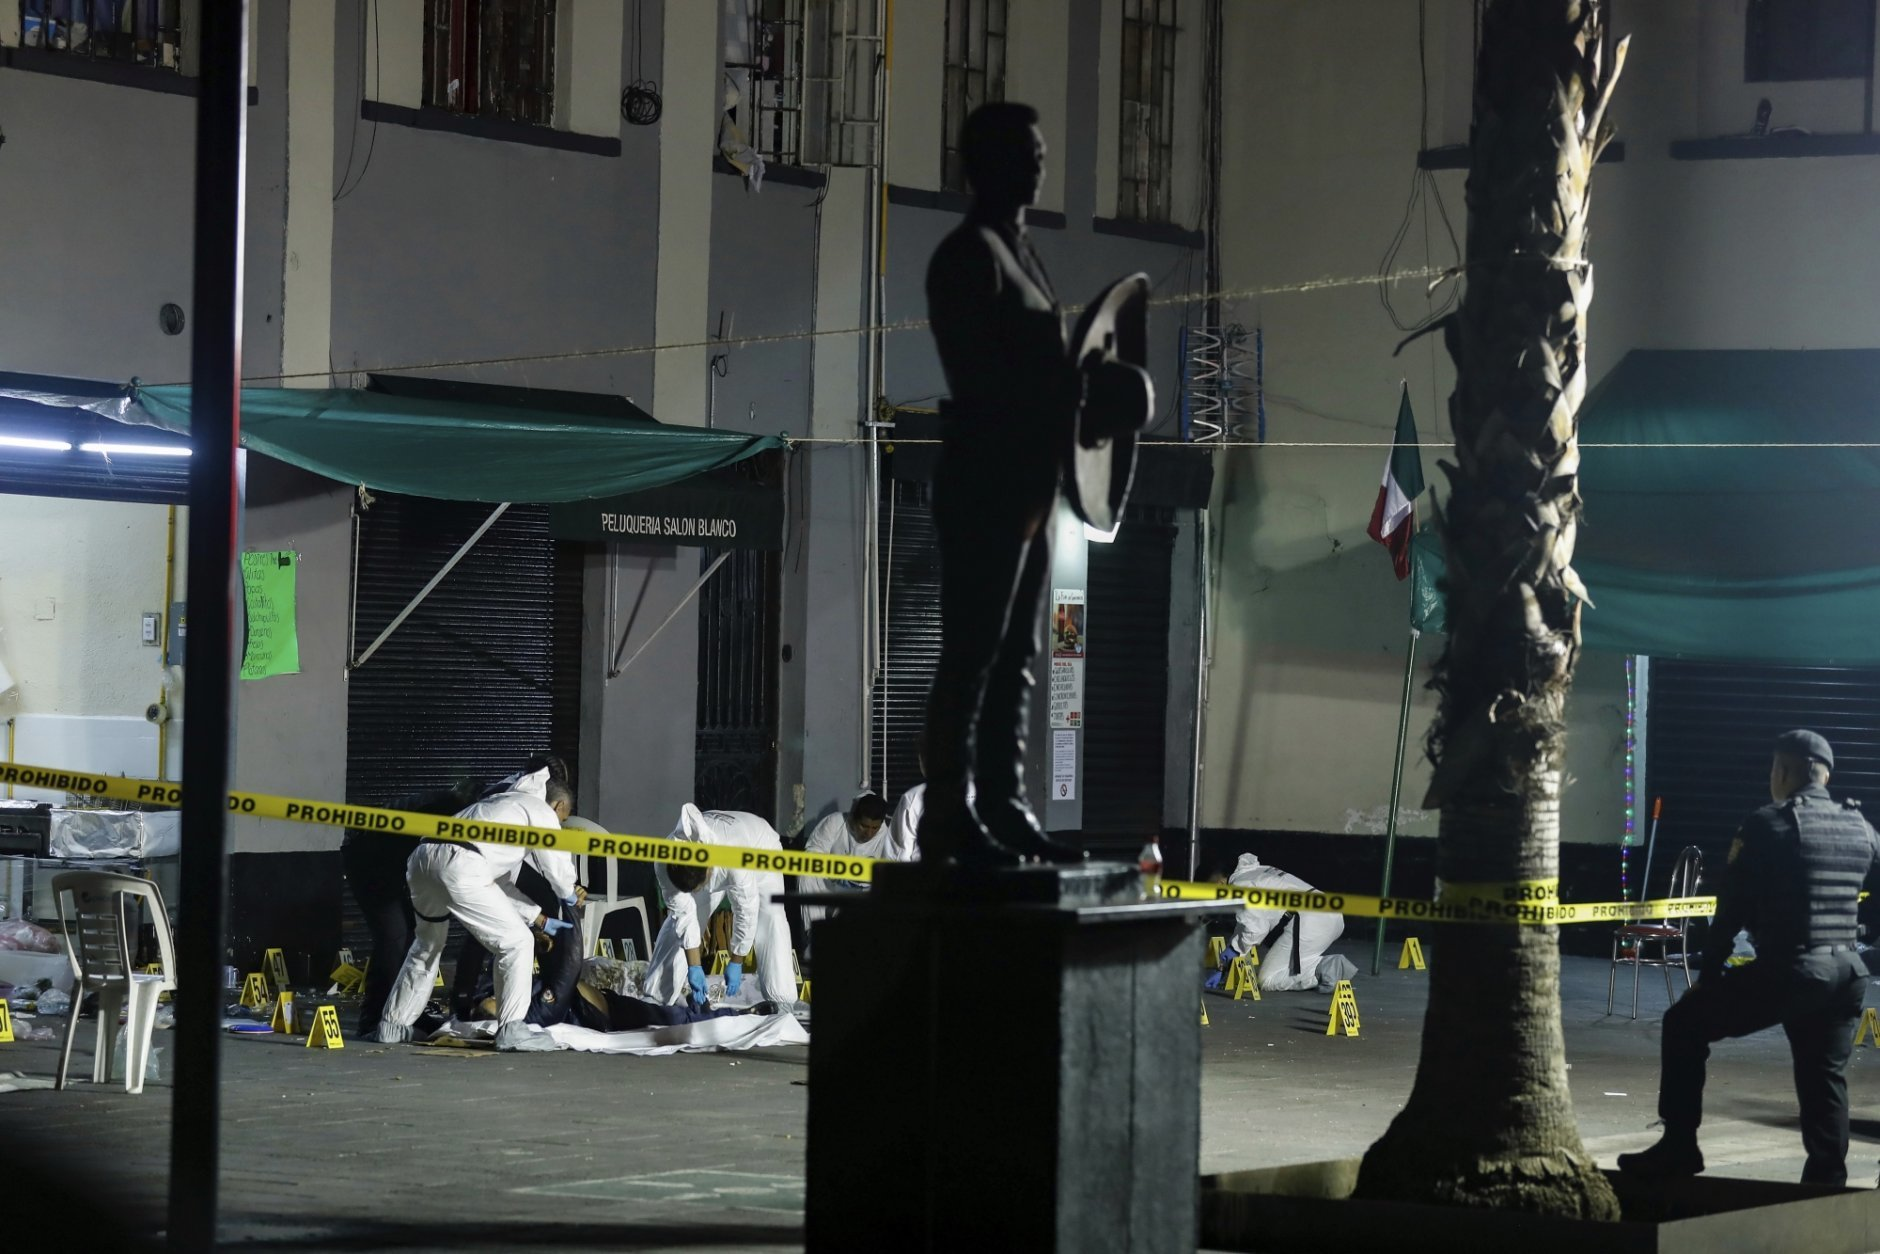 Crime scene workers cover the bodies of victims of a shooting in Garibaldi Plaza, in Mexico City, Friday Sept. 14, 2018. Mexican authorities say four people have been killed and nine wounded in a shooting at the capital's emblematic Garibaldi Plaza, a popular spot for tourists. (AP Photo/Stringer)